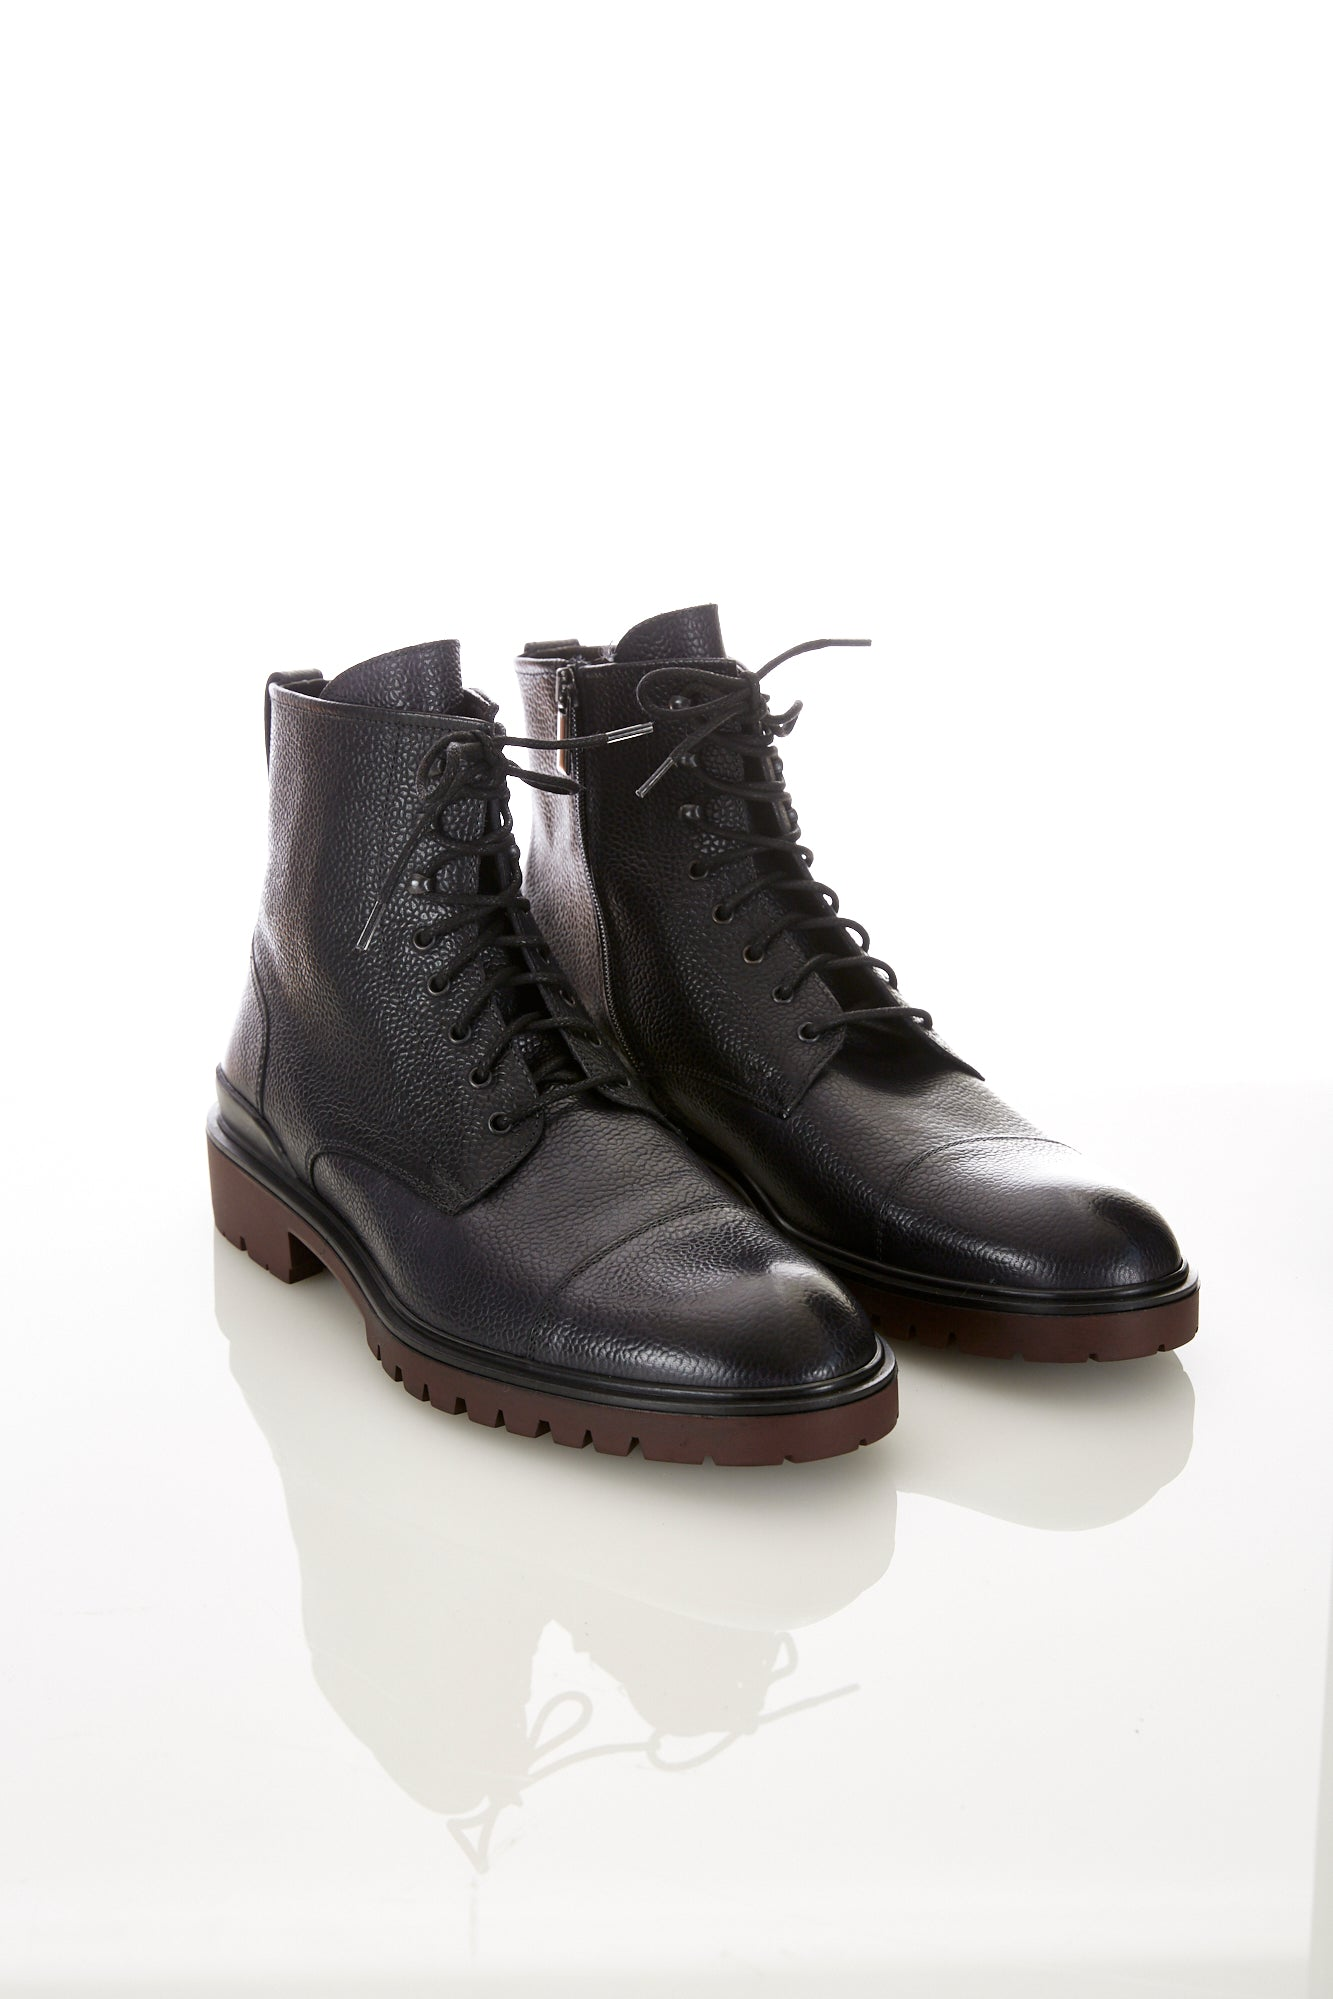 Giulio Moretti Black Side-Zip Cap Toe Boot - Shoes - Giulio Moretti - LALONDE's